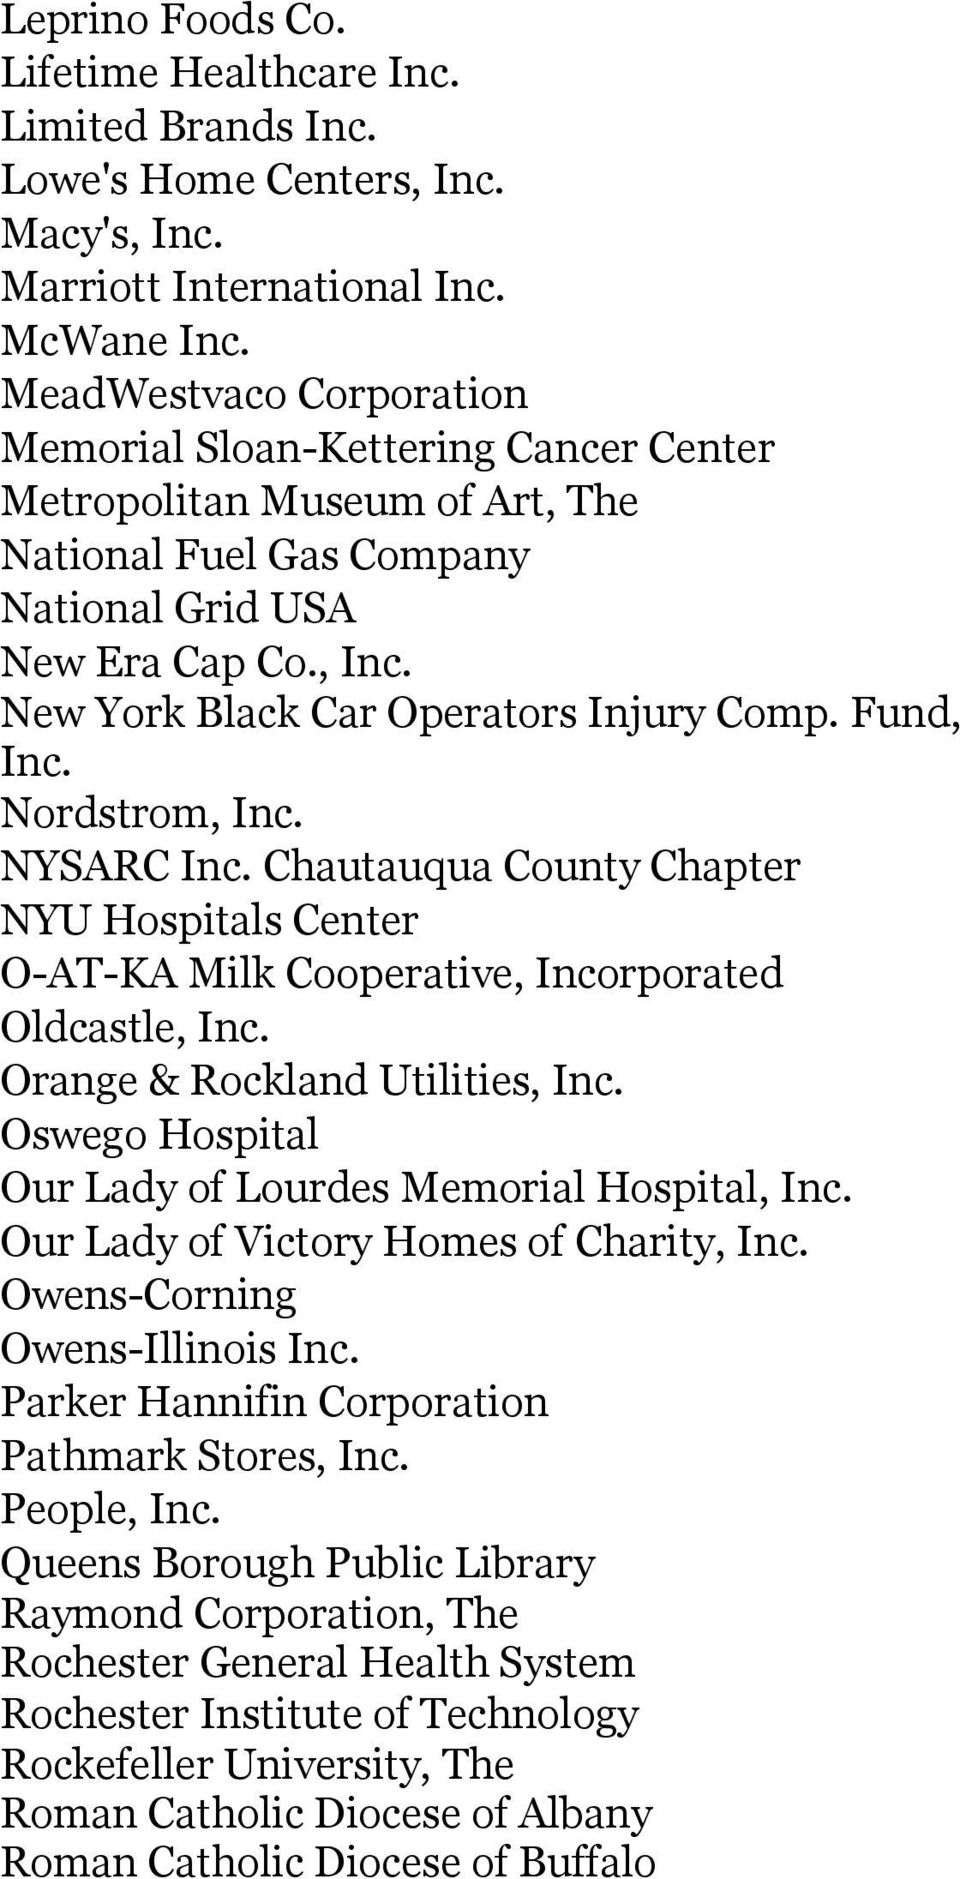 New York Black Car Operators Injury Comp. Fund, Inc. Nordstrom, Inc. NYSARC Inc. Chautauqua County Chapter NYU Hospitals Center O-AT-KA Milk Cooperative, Incorporated Oldcastle, Inc.